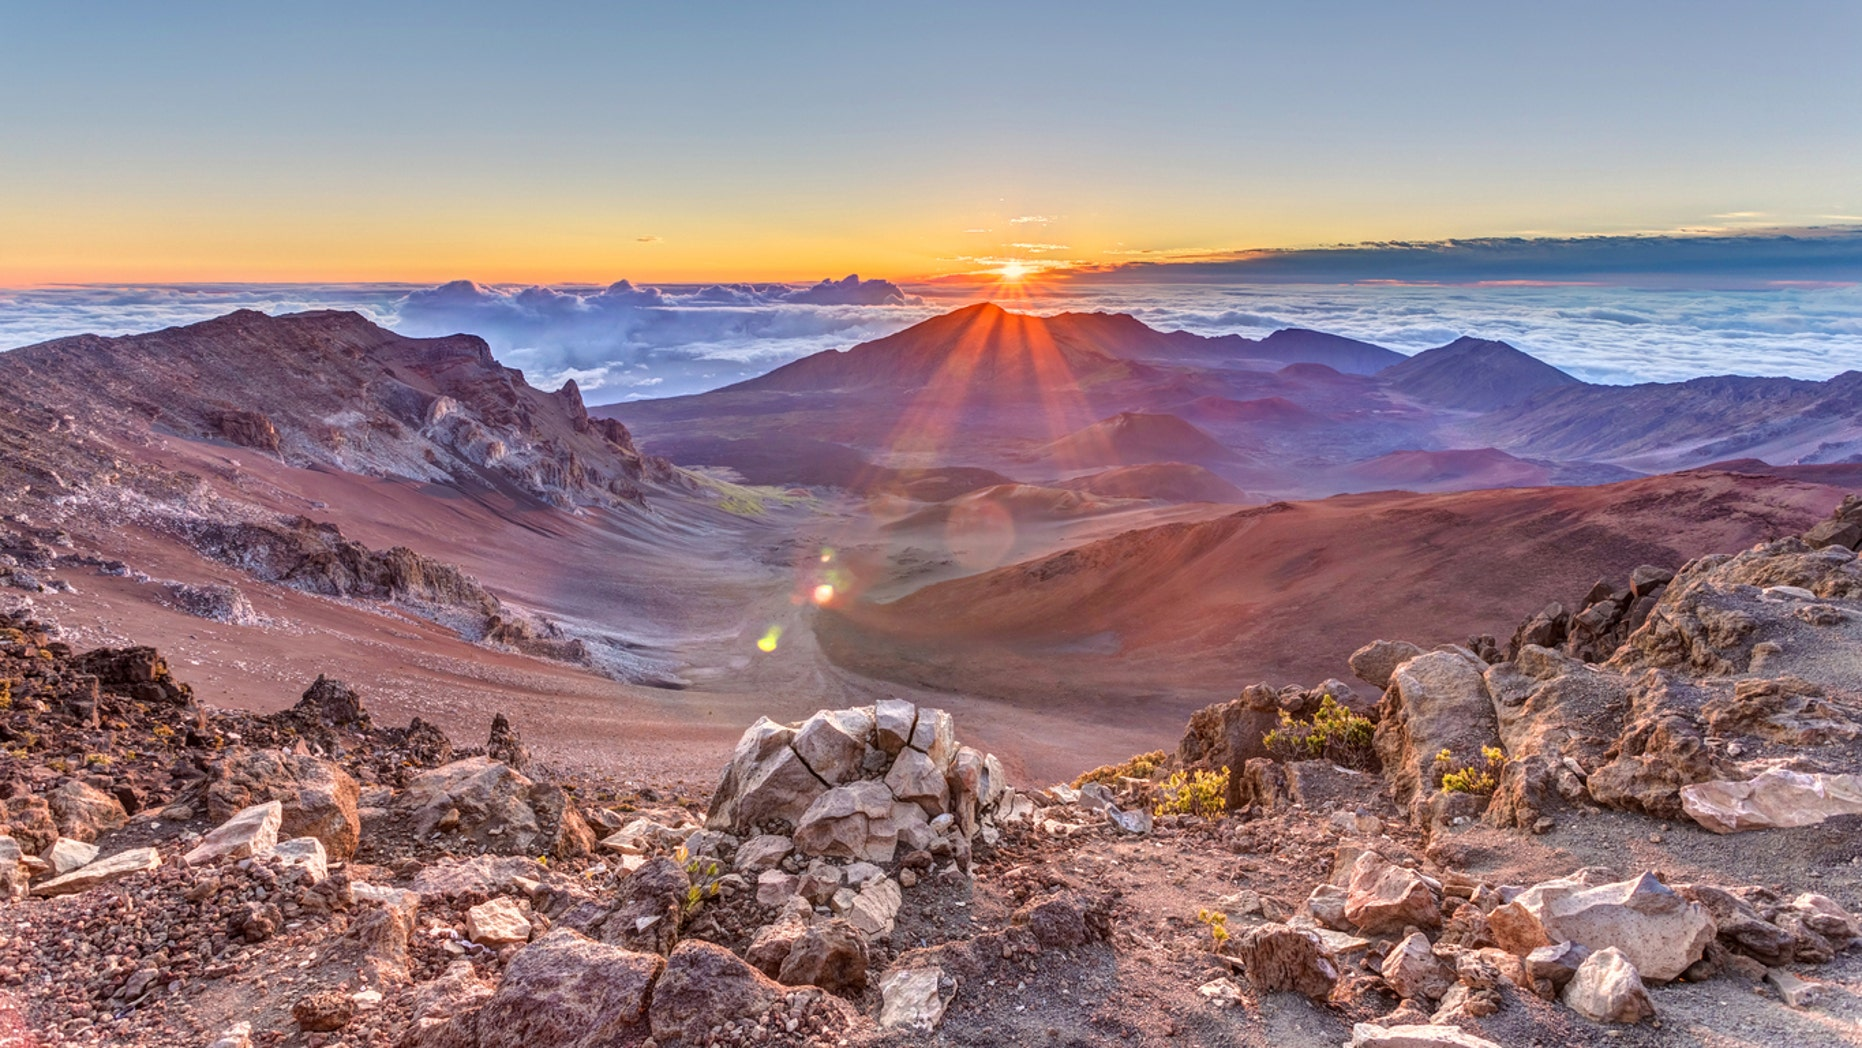 Sunrise from the summit of Haleakala volcano on the tropical island of Maui, Hawaii.